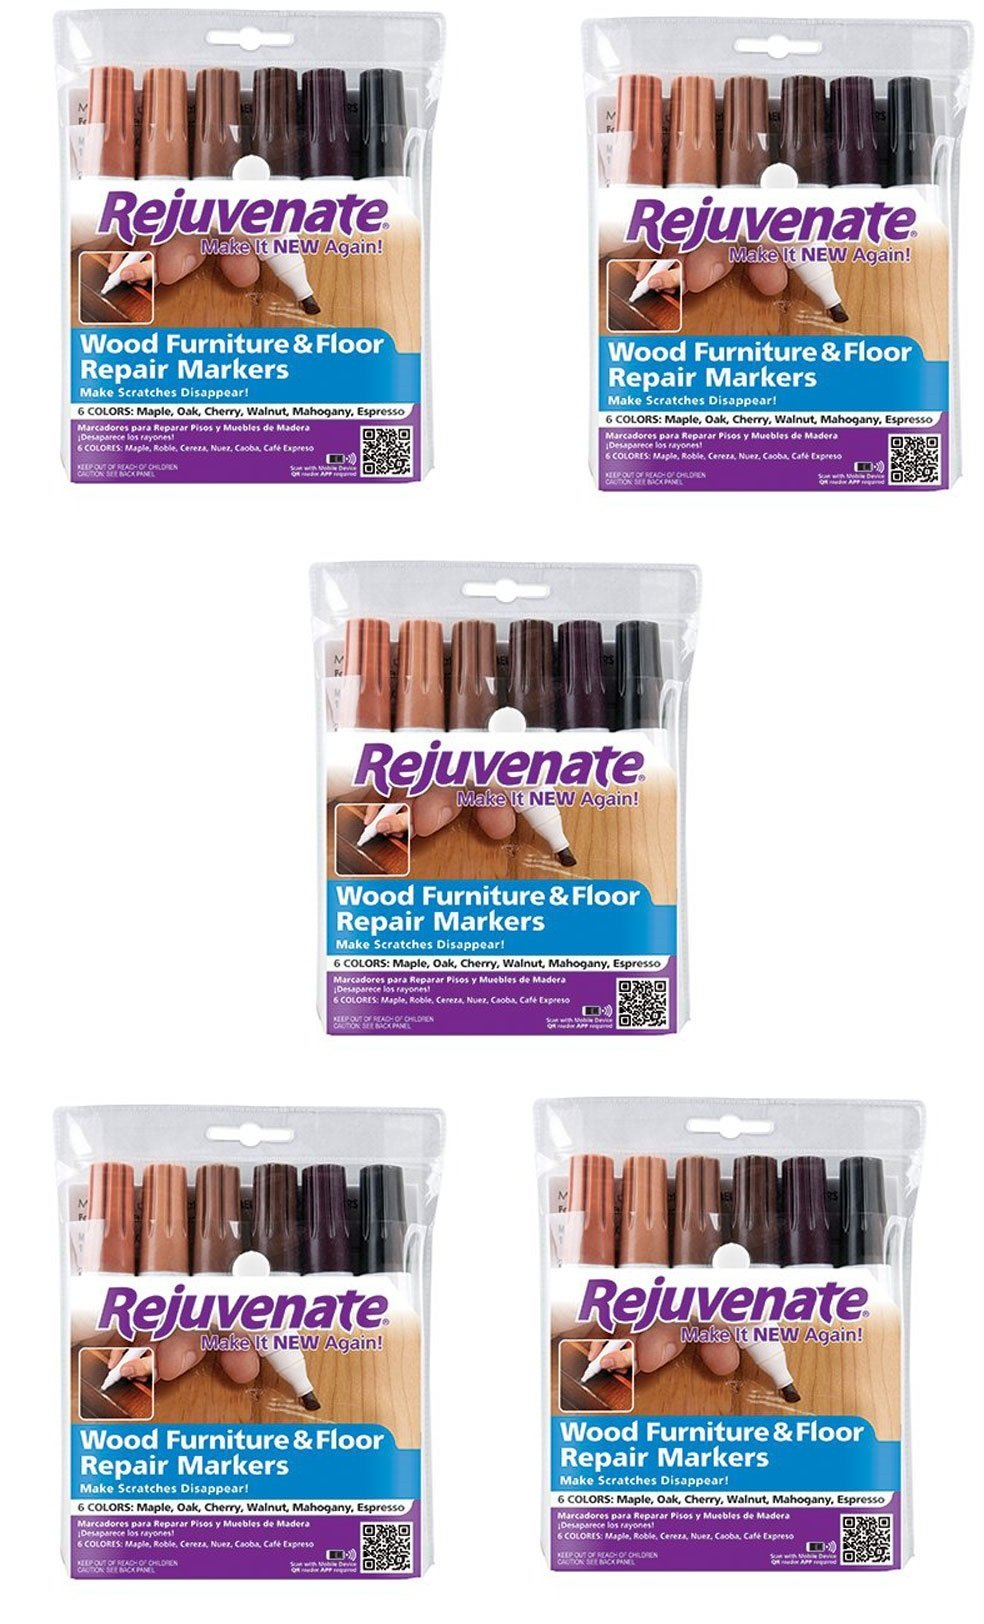 Rejuvenate Wood Furniture & Floor Repair Markers Make Scratches Disappear in Any Color Wood - 6 Colors; Maple, Oak, Cherry, Walnut, Mahogany, Espresso (5 pack) by Rejuvenate